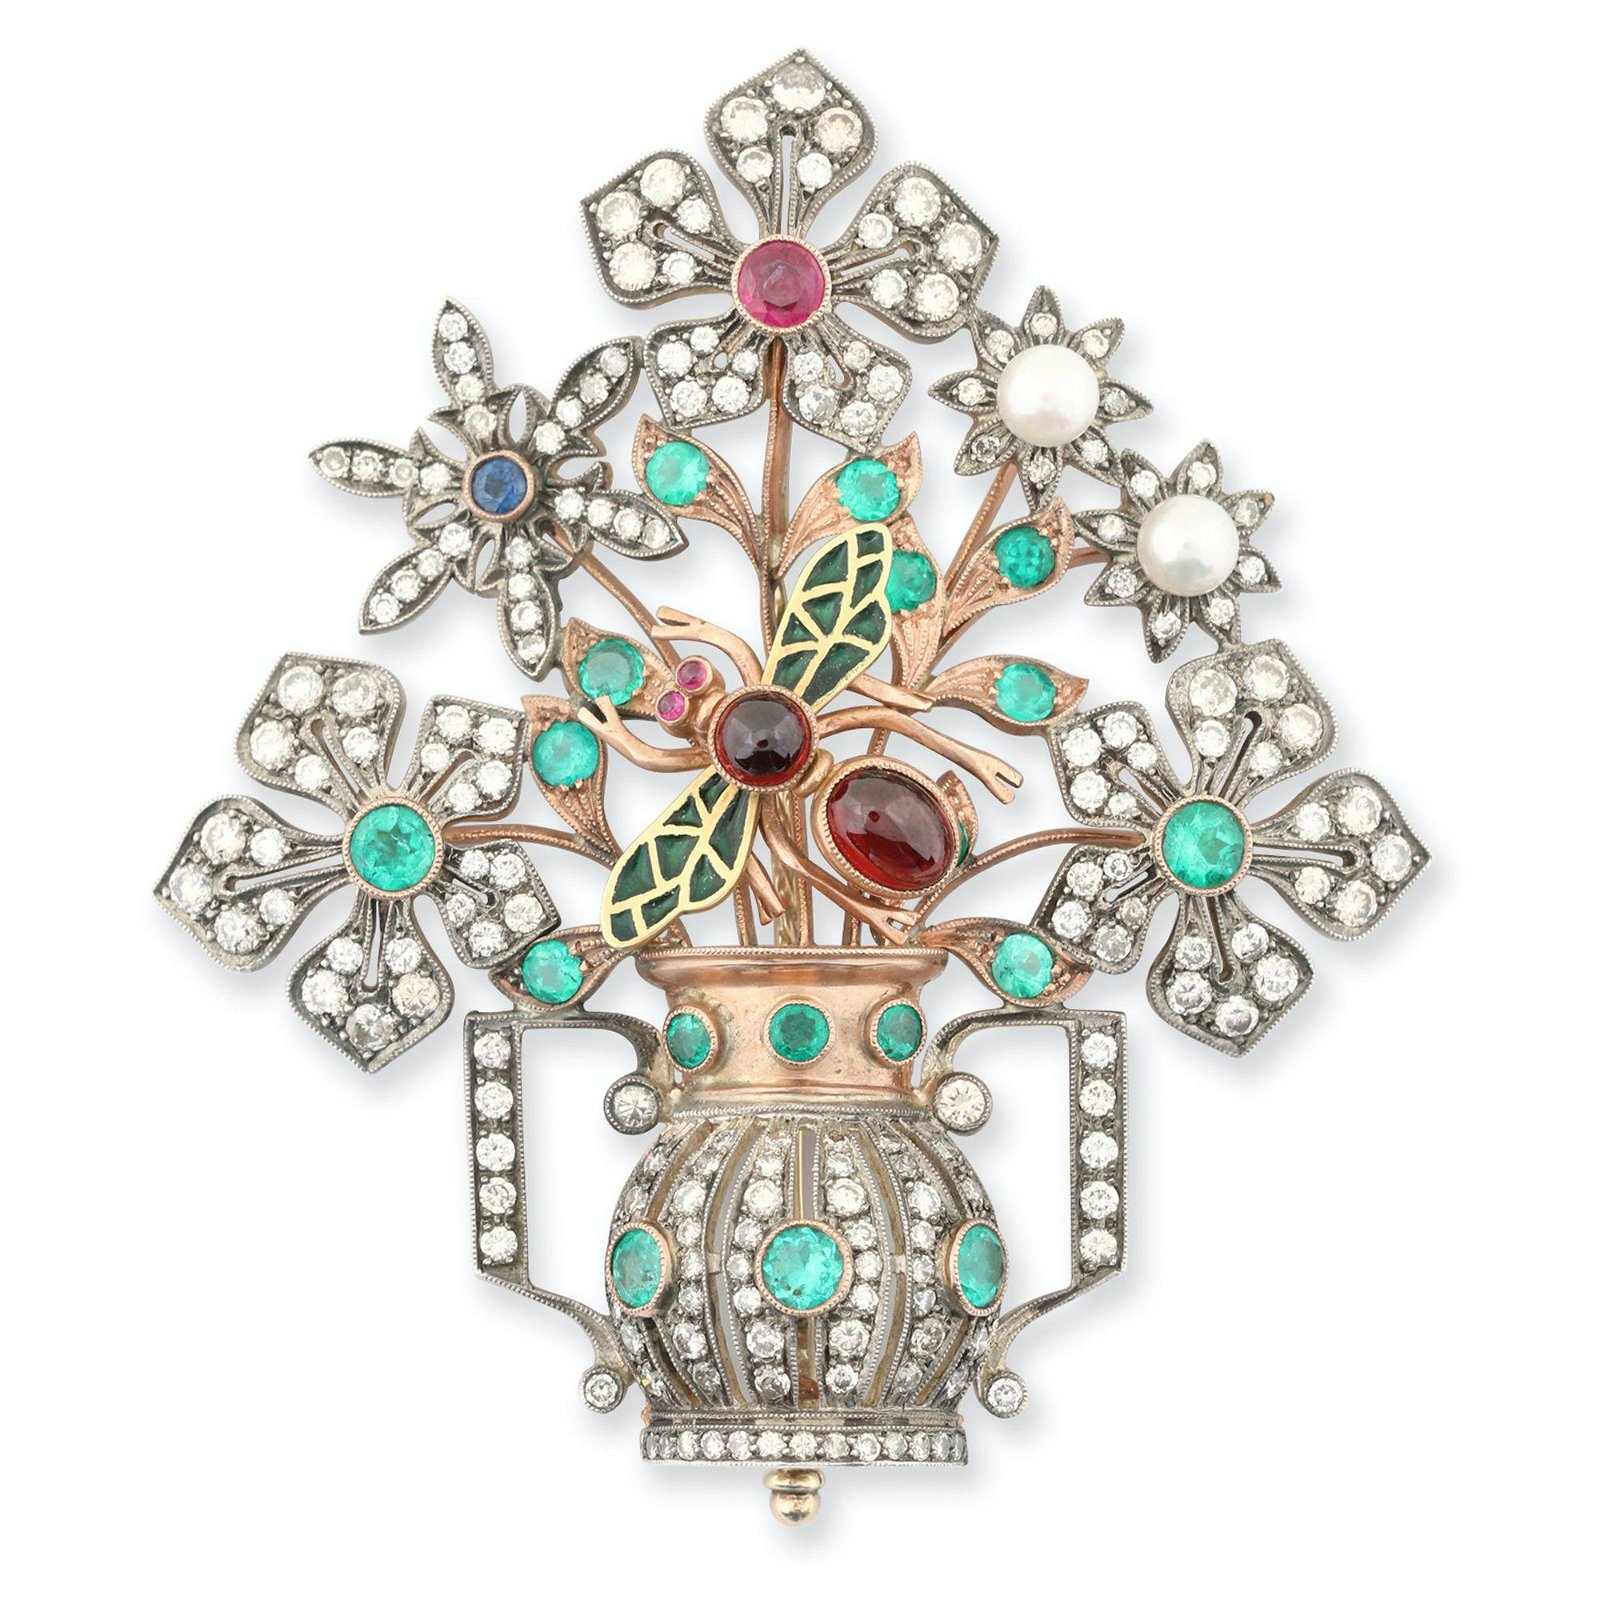 14K Gold Figural Mixed Stone Brooch